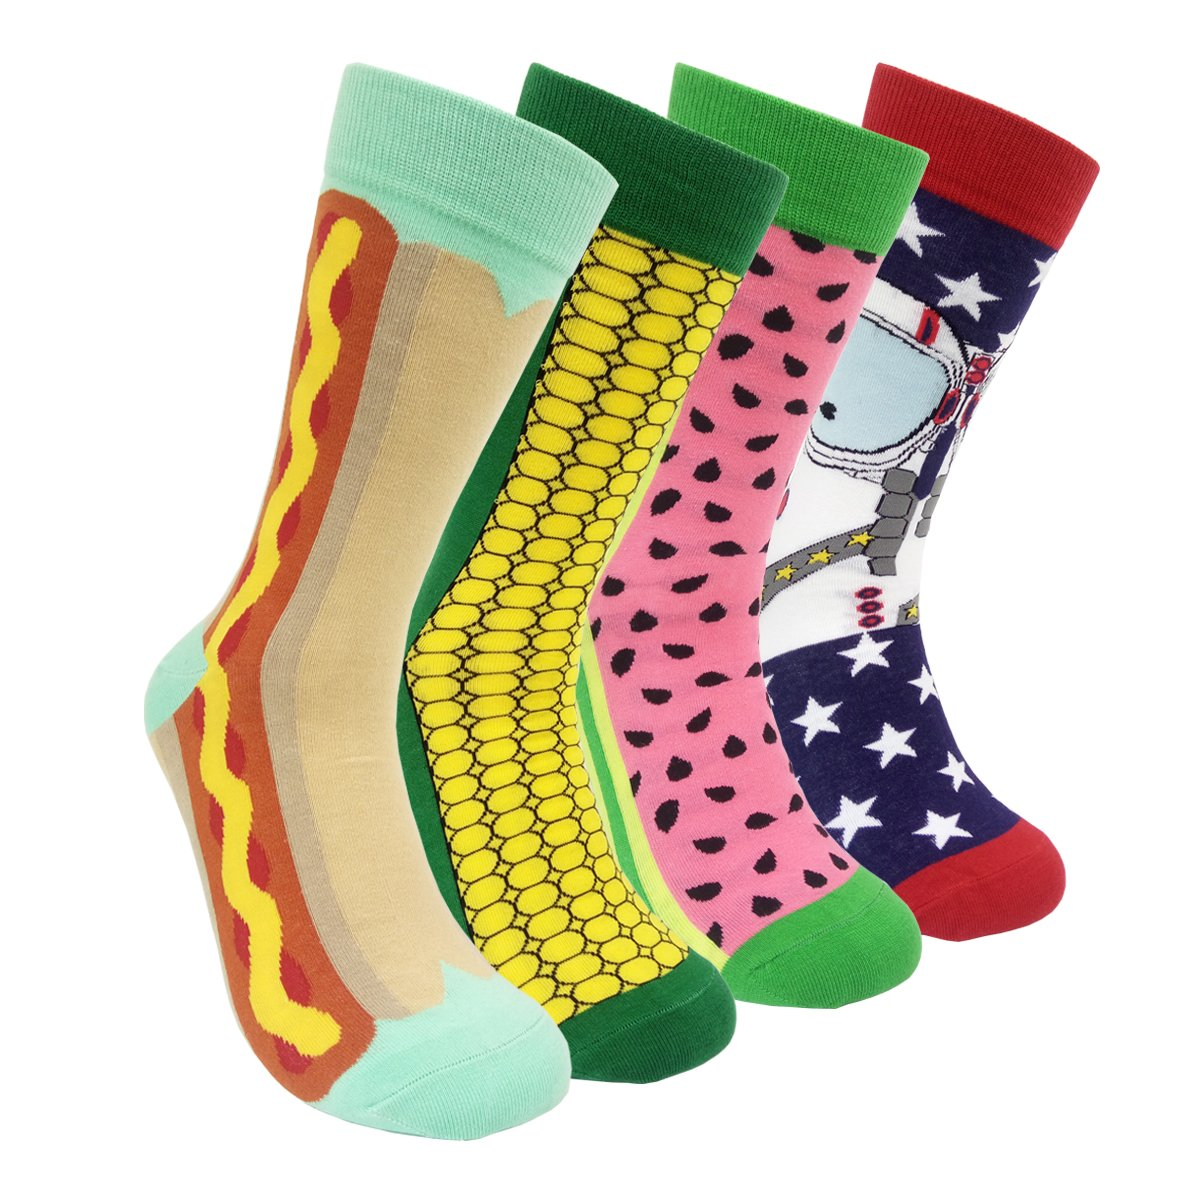 Colorful Mens Dress Socks Funky – HSELL Men Multicolored Crazy Pattern Fashionable Fun Crew Socks 4 Pack (C2)